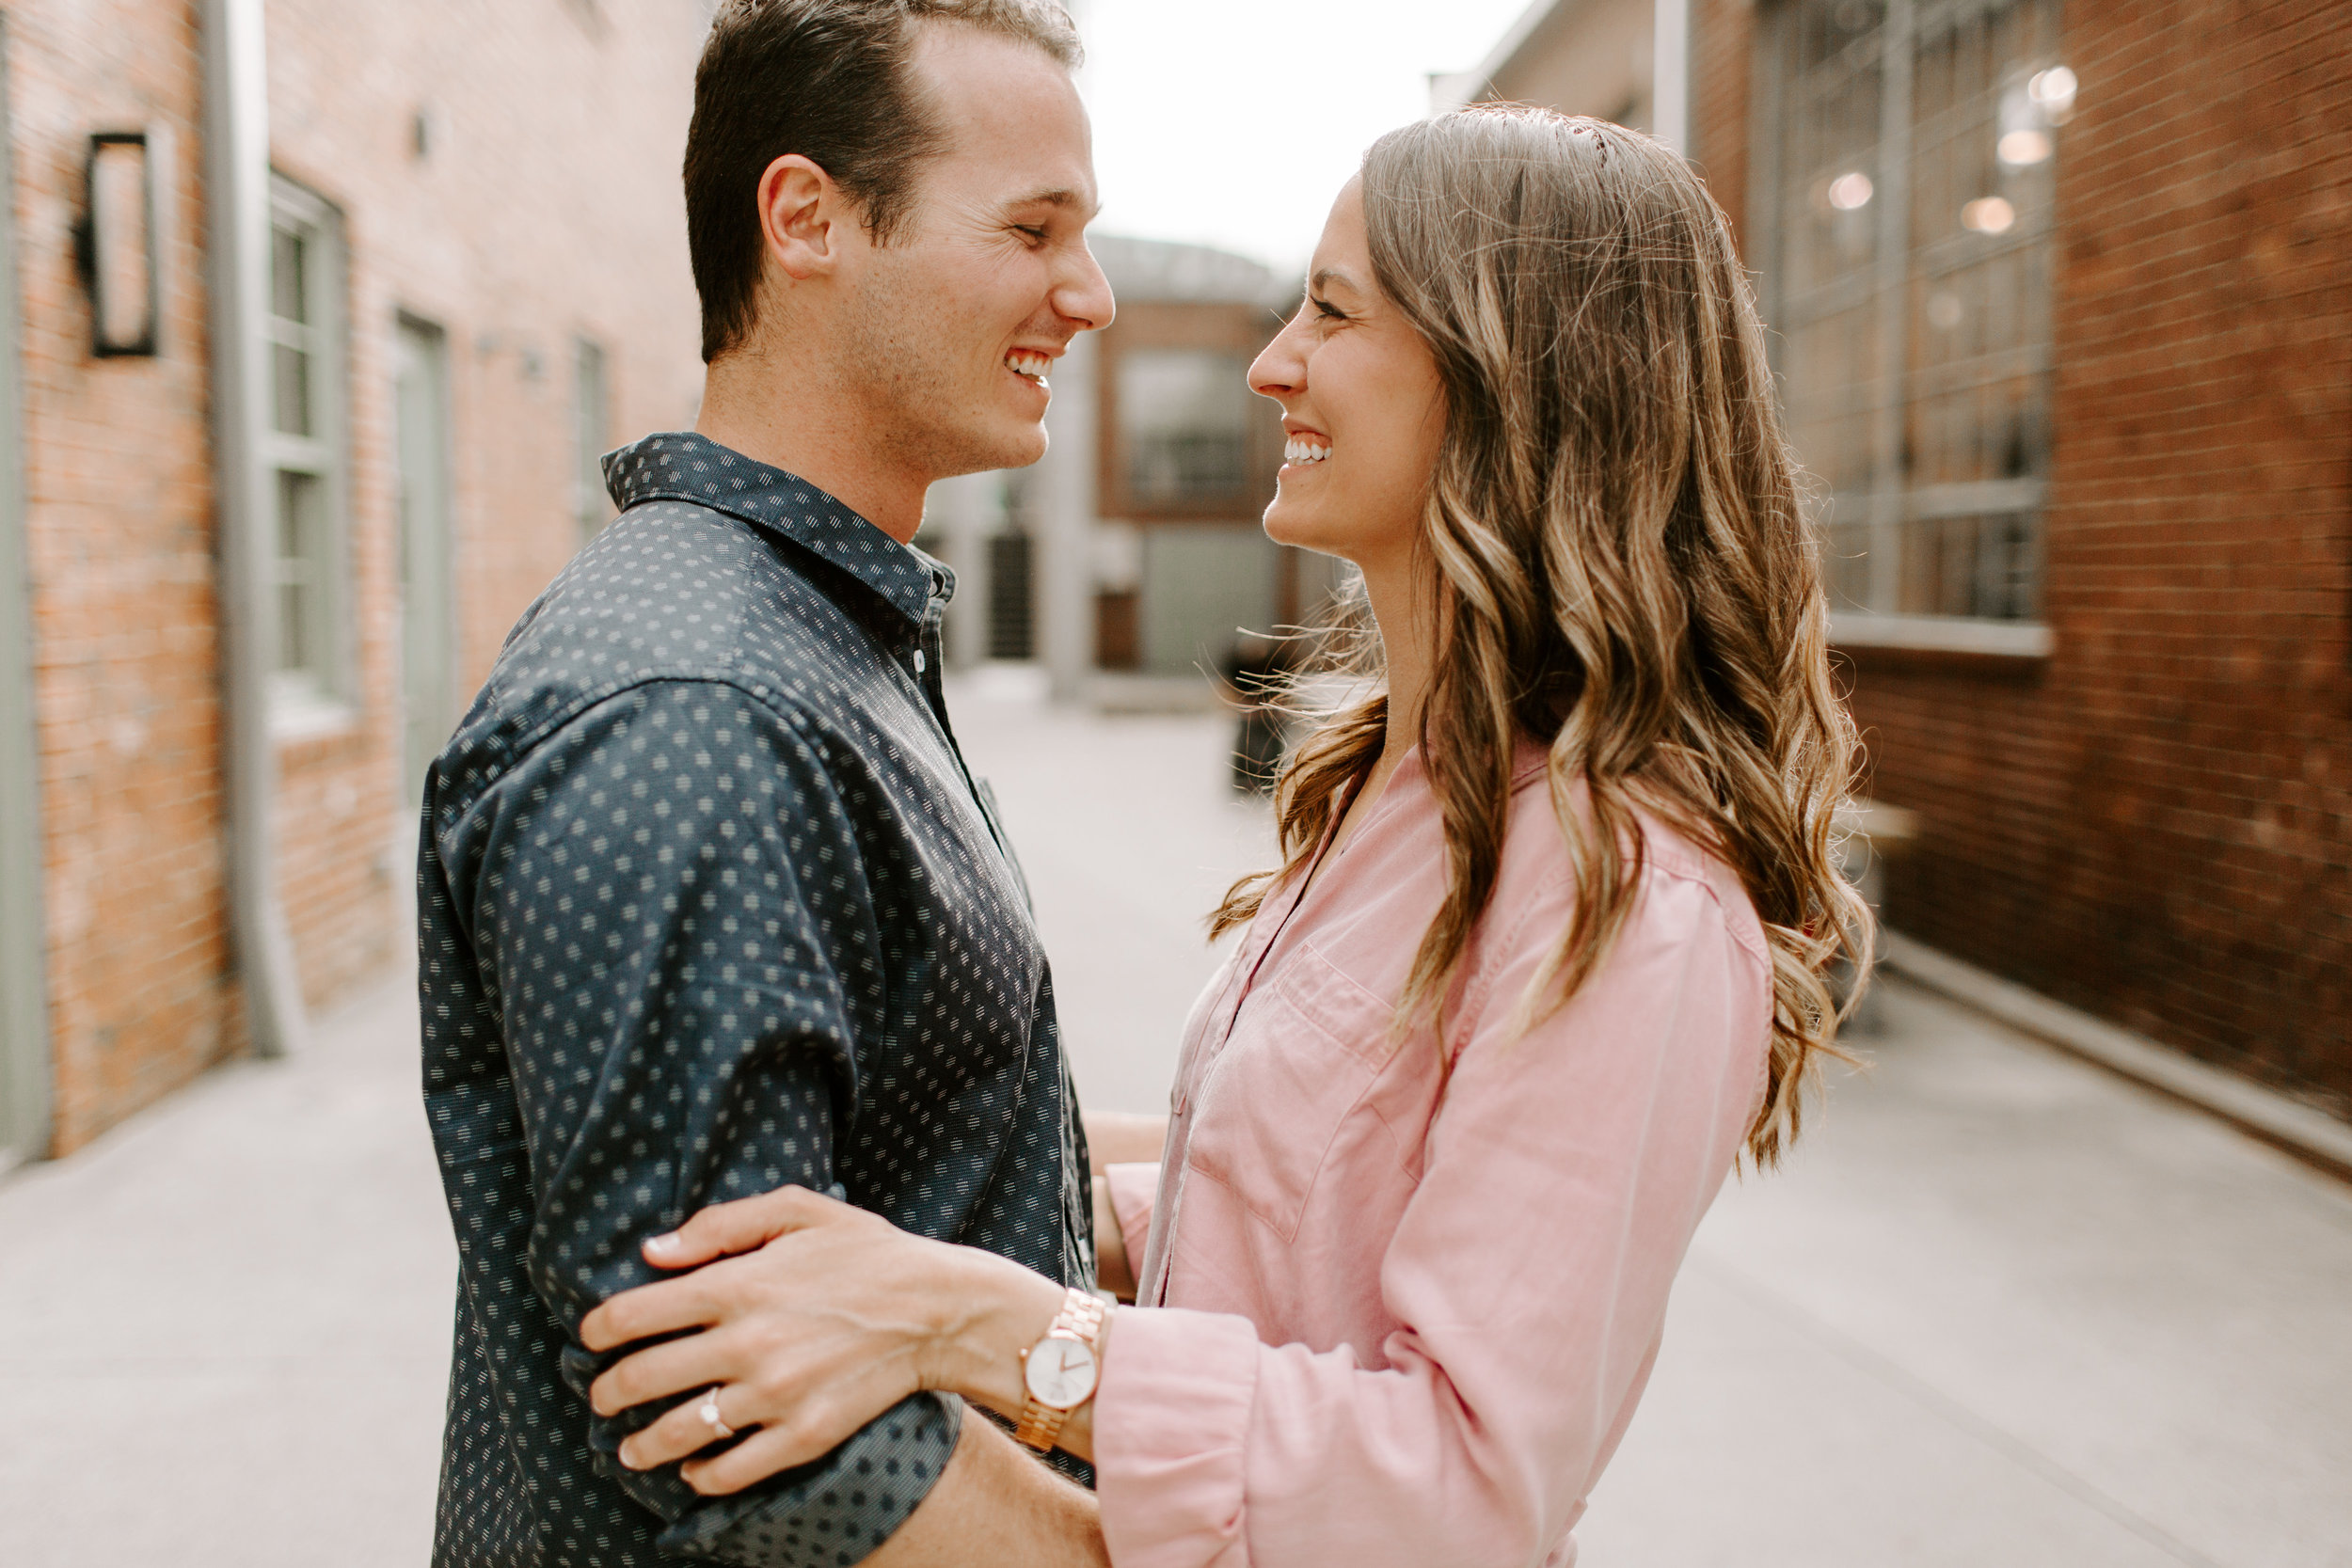 2018.03.16_kayleematt_nashville_engagement_elissavossphotography_previews_02.jpg